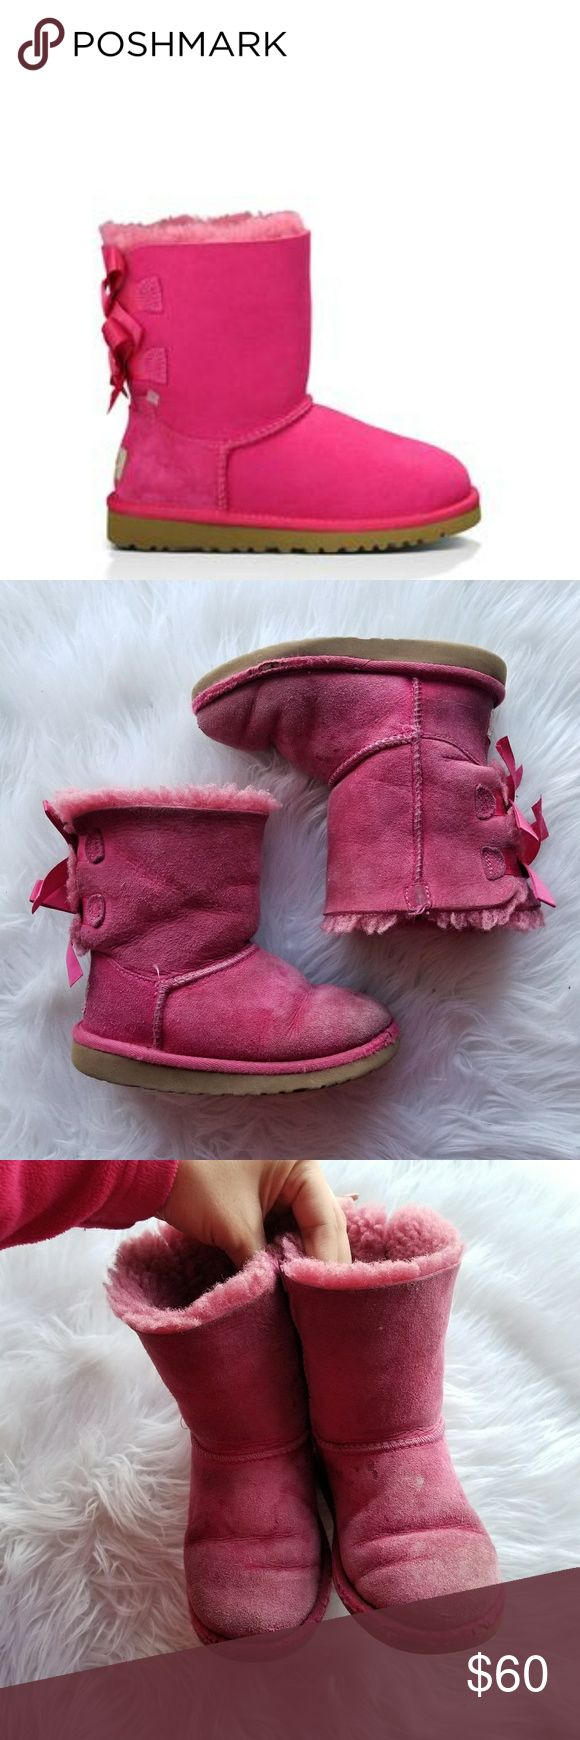 Ugg Bailey Bow Boot Cerise The Bailey Bow is embellished with fixed, double ribbon bows at the back, enhancing the defining features of an UGG® Classic. A light, flexible outsole and foundational Twinface sheepskin keep feet cozy and dry indoors or out, while durable construction and added foam ensure all-day comfort. Preloved, some tears and signs of wear as seen in the pictures. Still a long life left. Size 11 Toddler UGG Shoes Boots